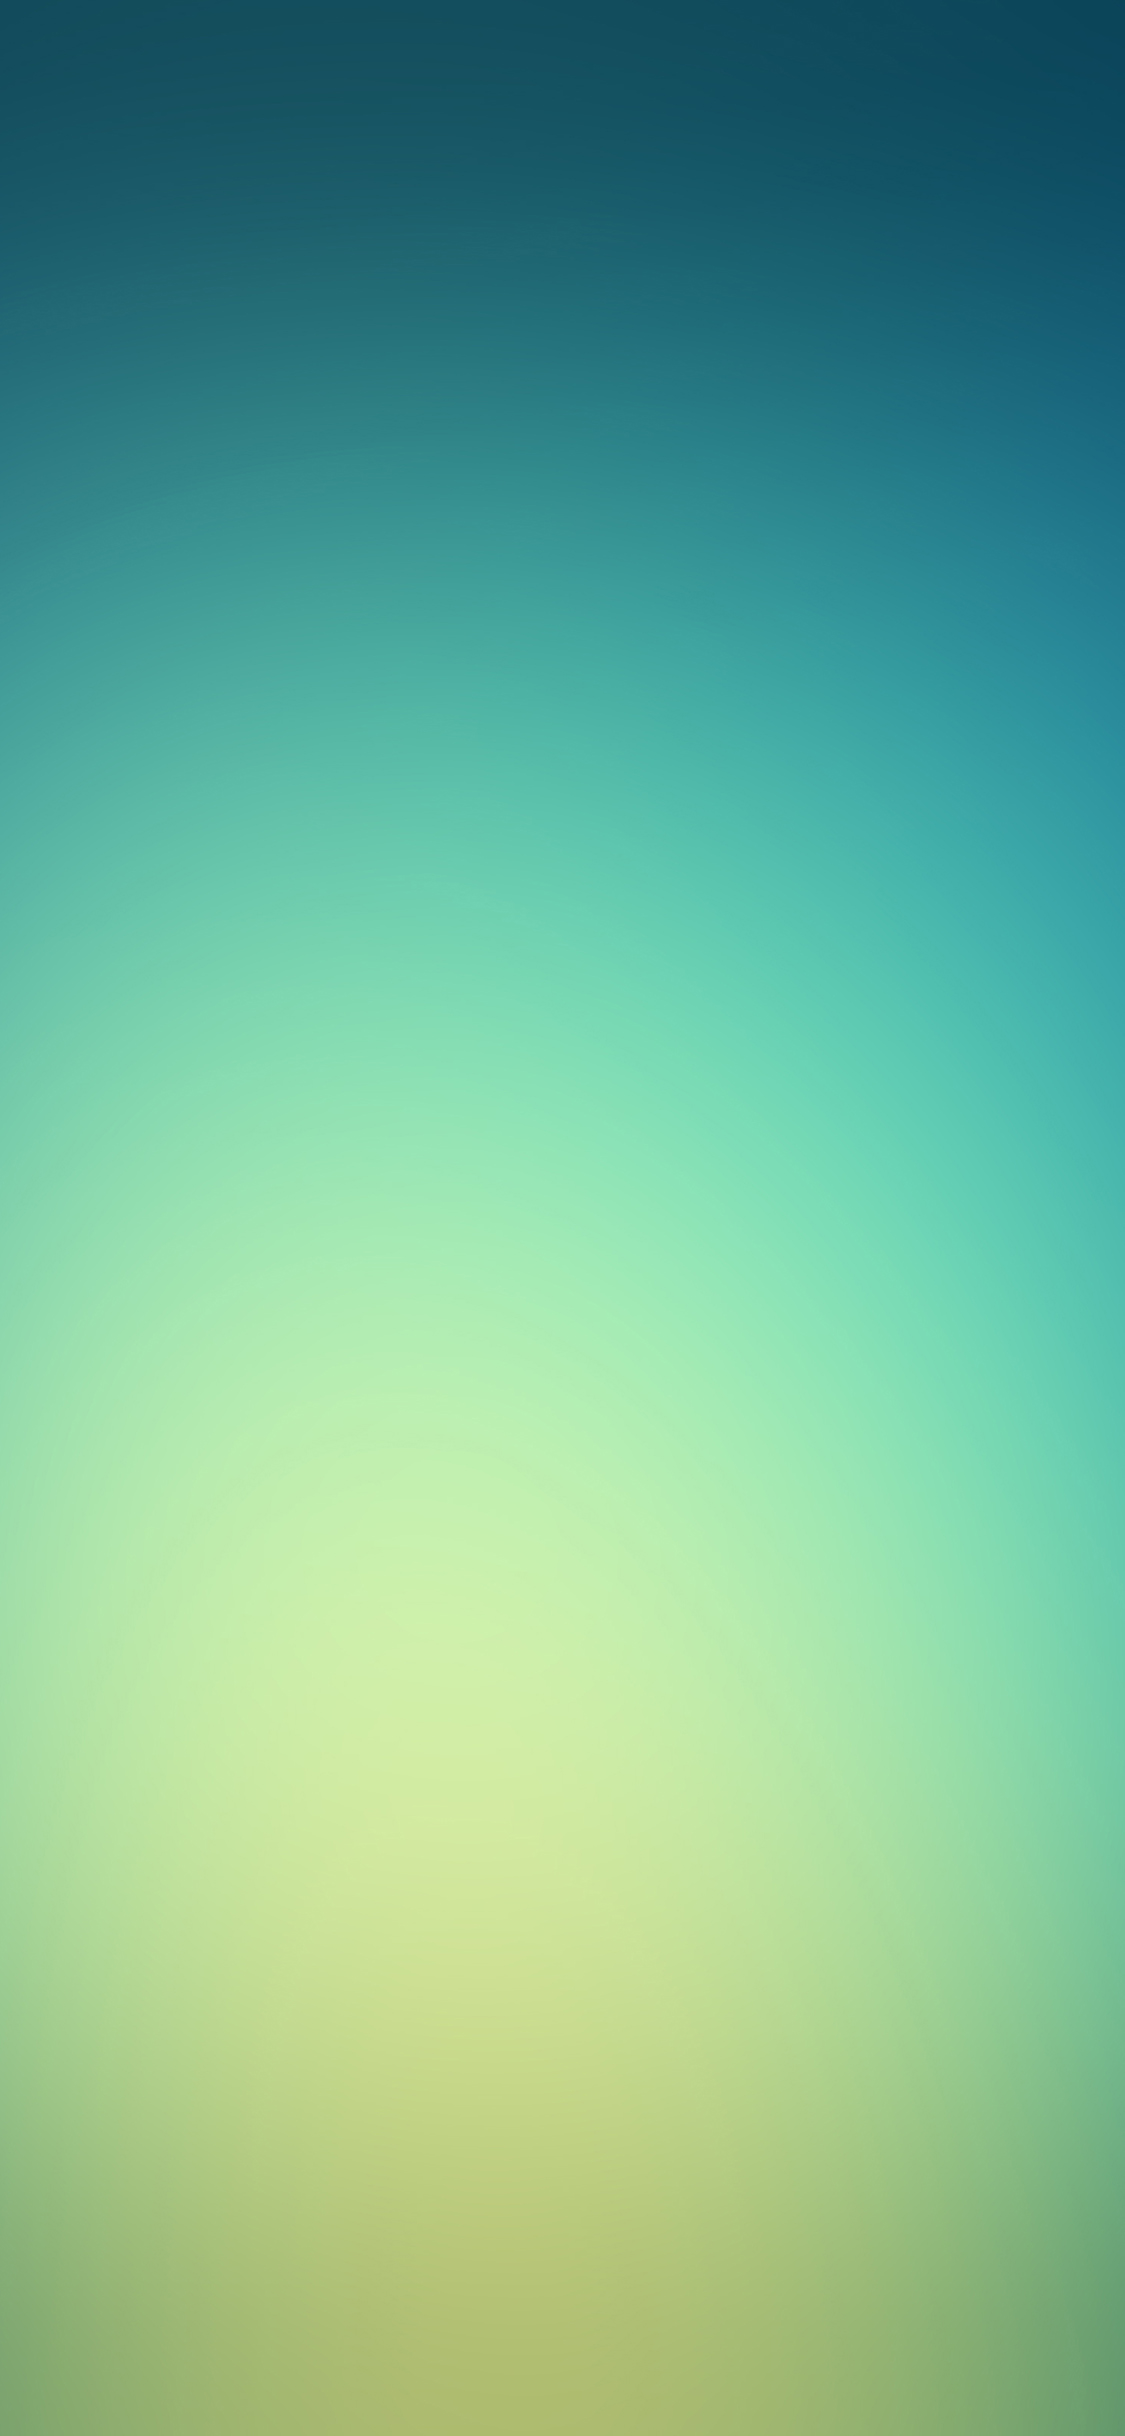 iPhoneXpapers.com-Apple-iPhone-wallpaper-sd52-hd-wallpaper-nexus-gradation-blur